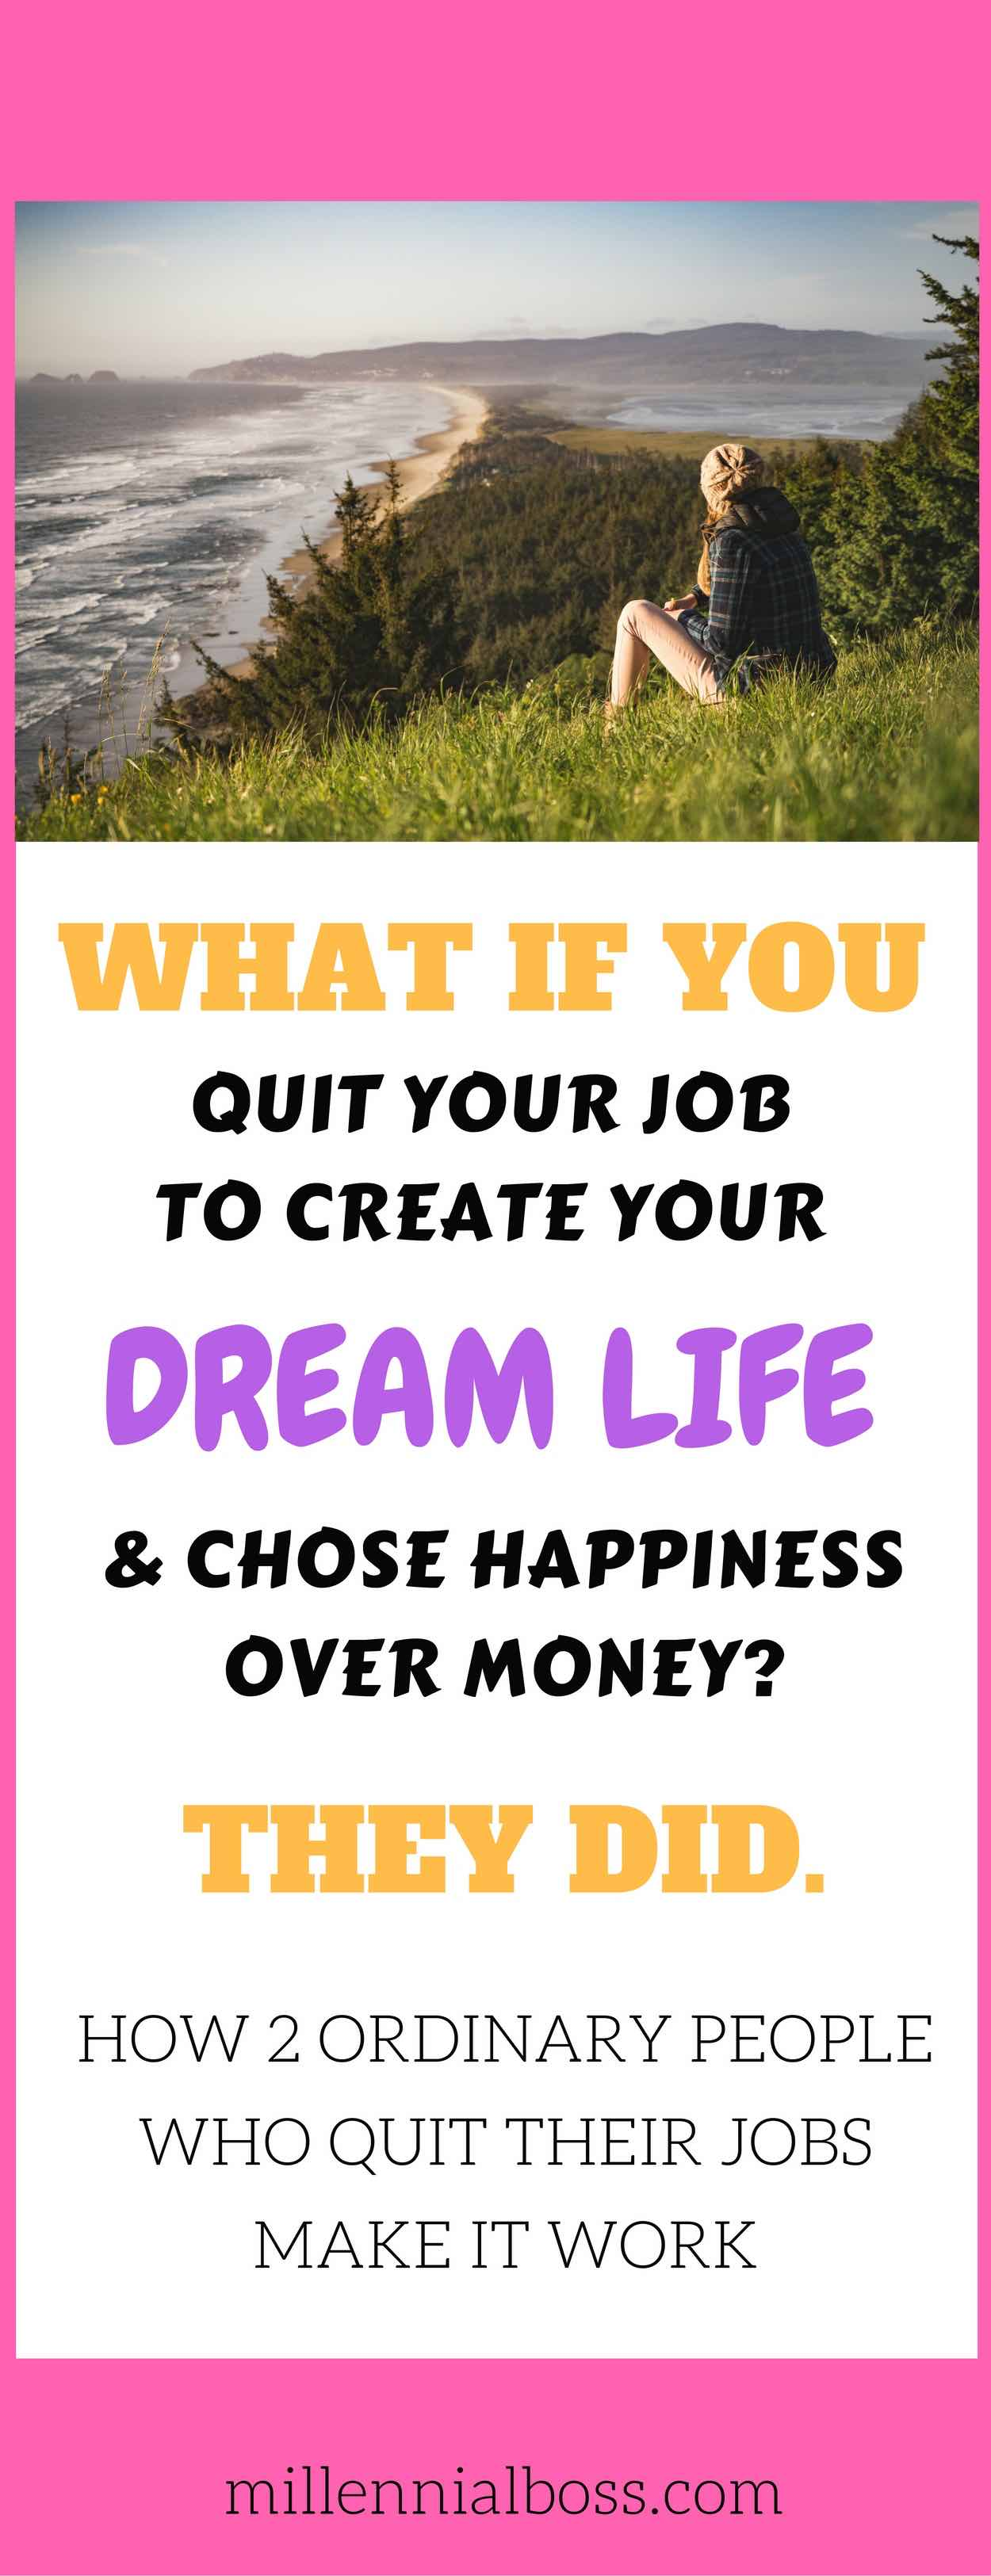 Would you quit your job to find happiness? Here are two people who quit their jobs and survived.